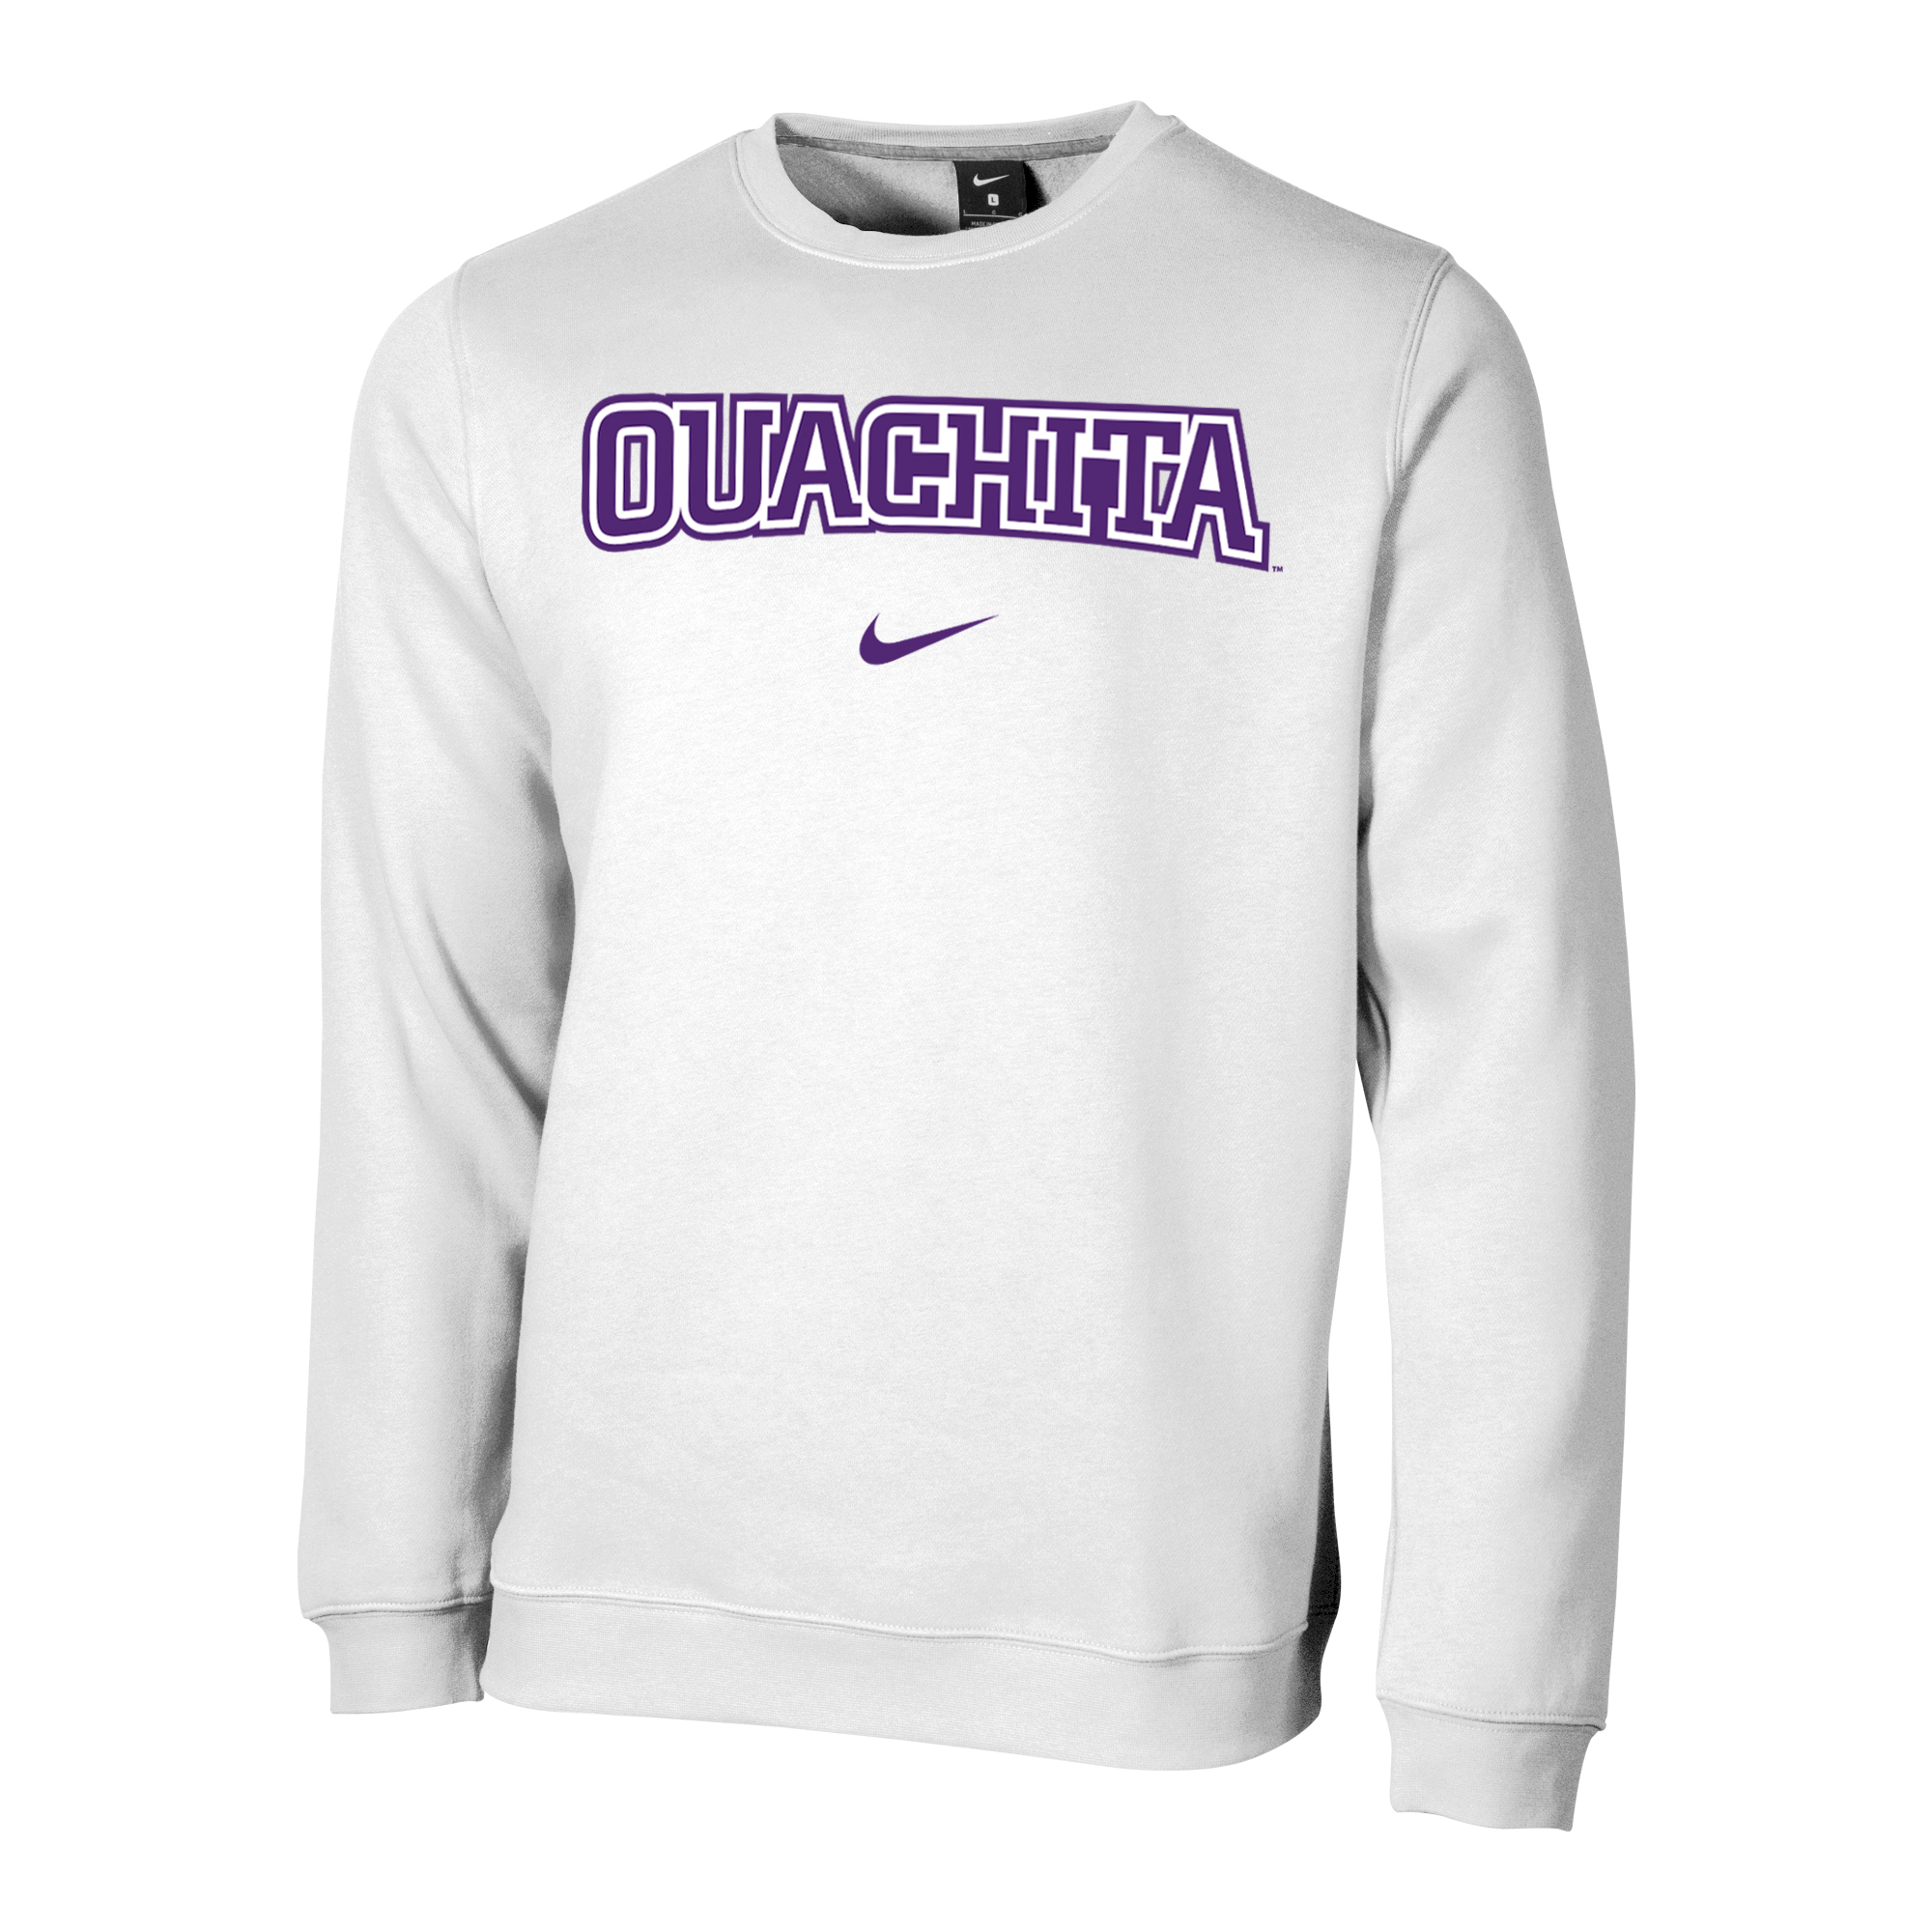 OUACHITA NIKE CLUB FLEECE CREW SWEATSHIRT